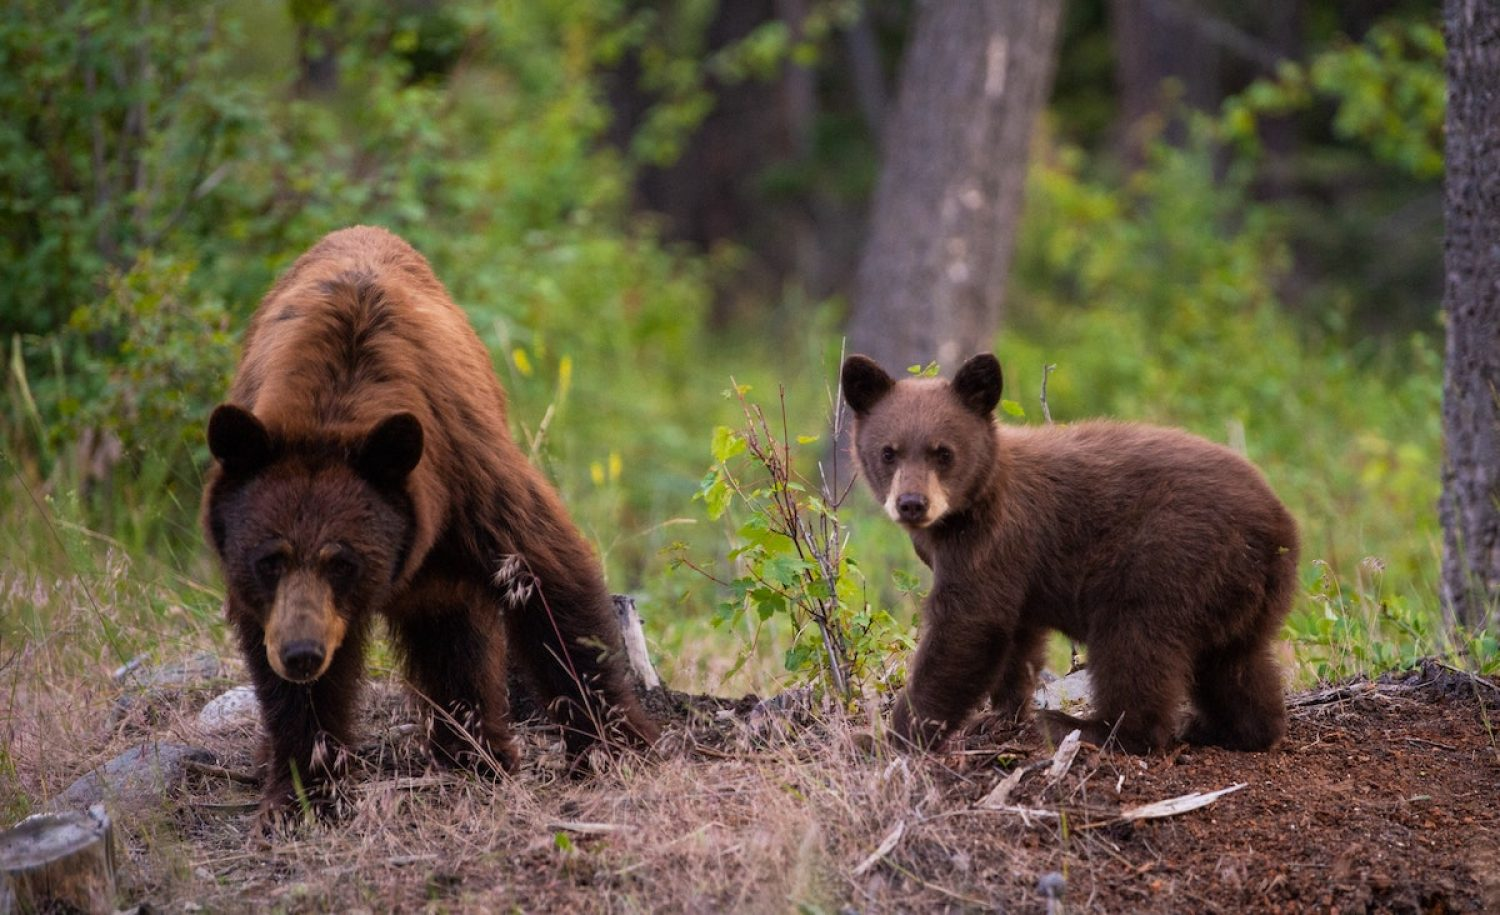 In North America species including bears already benefit from wildlife bridges